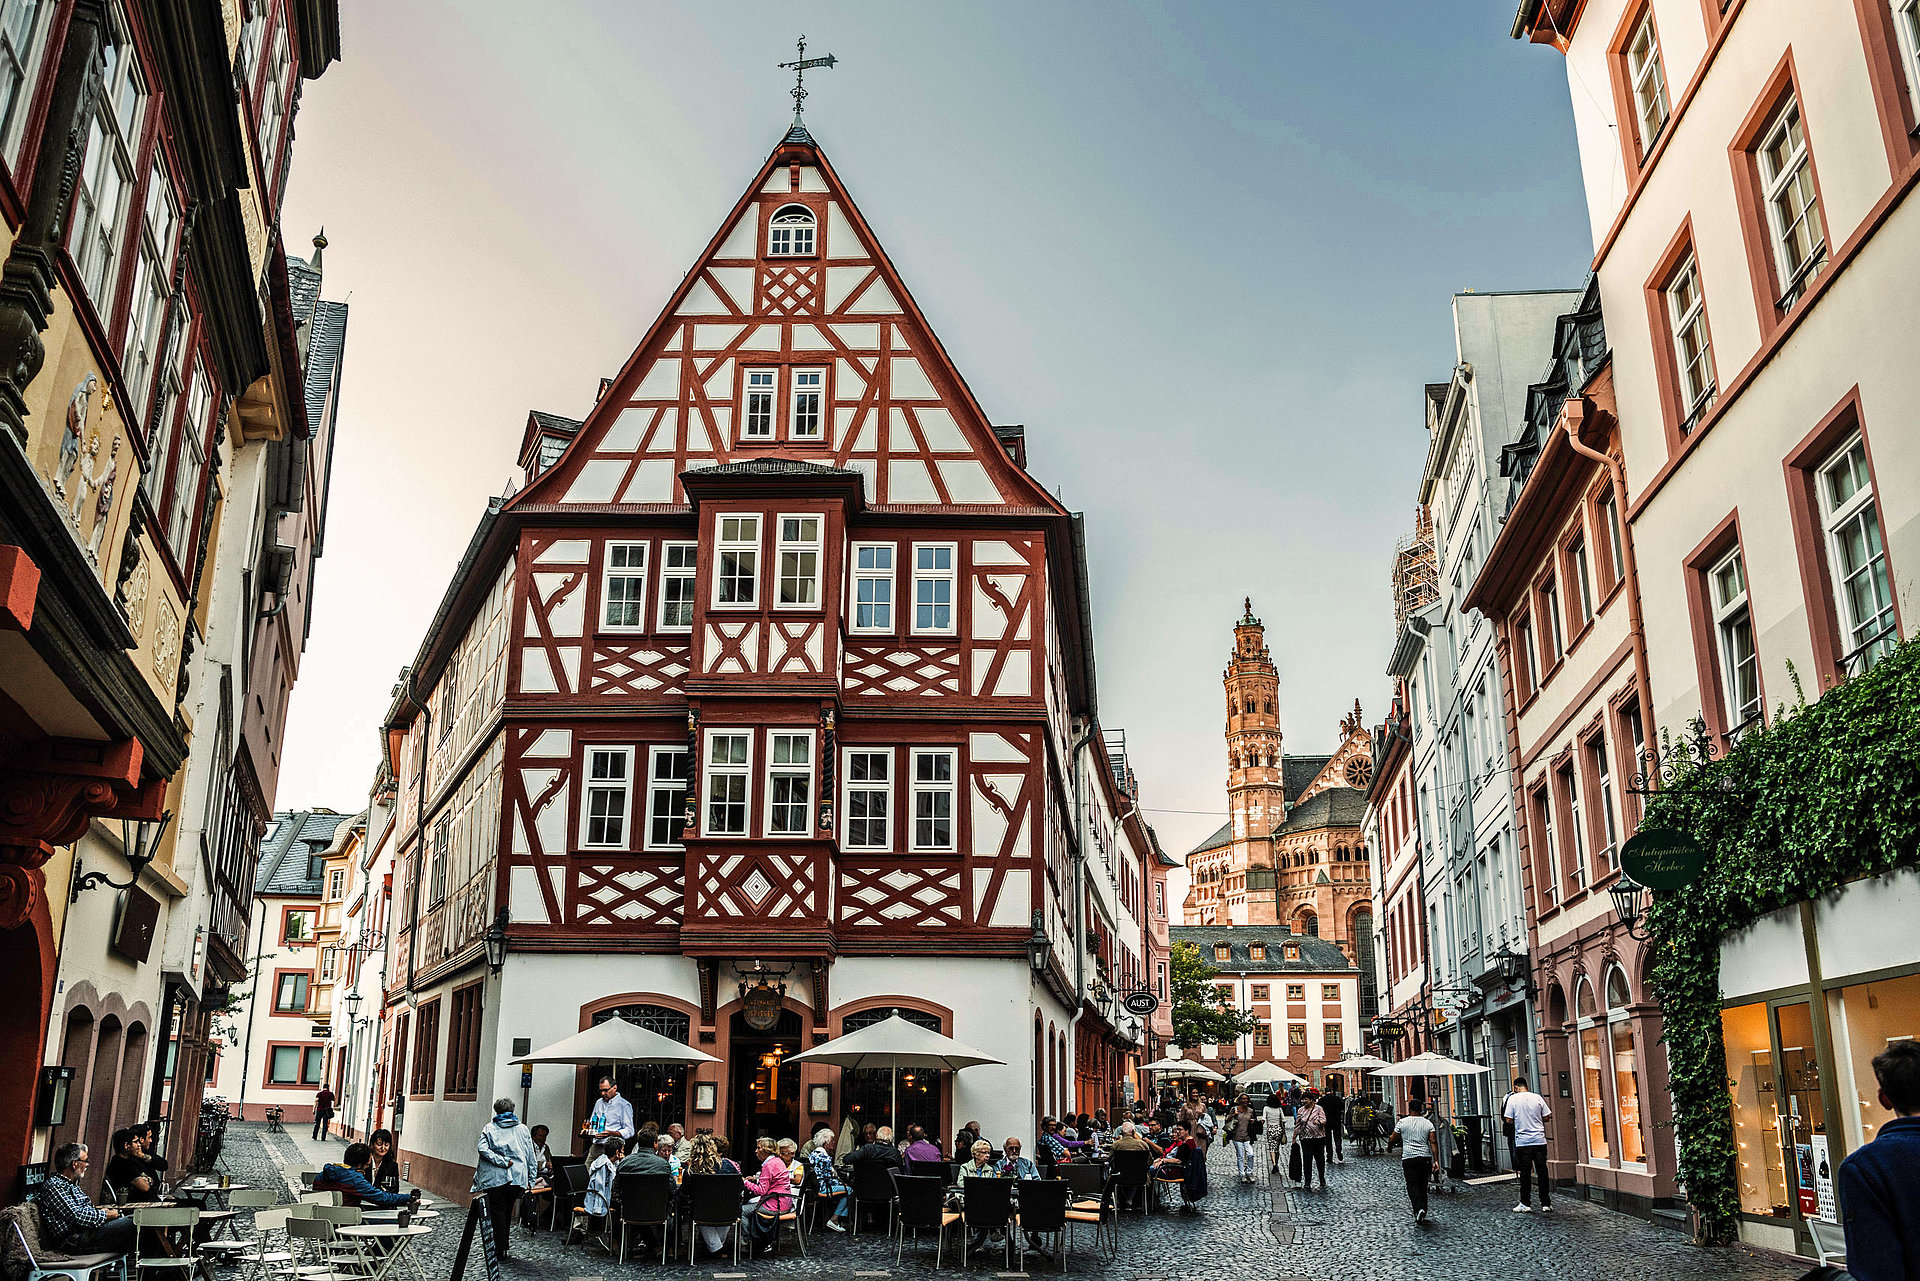 The old town of Mainz, Rhine-Hesse